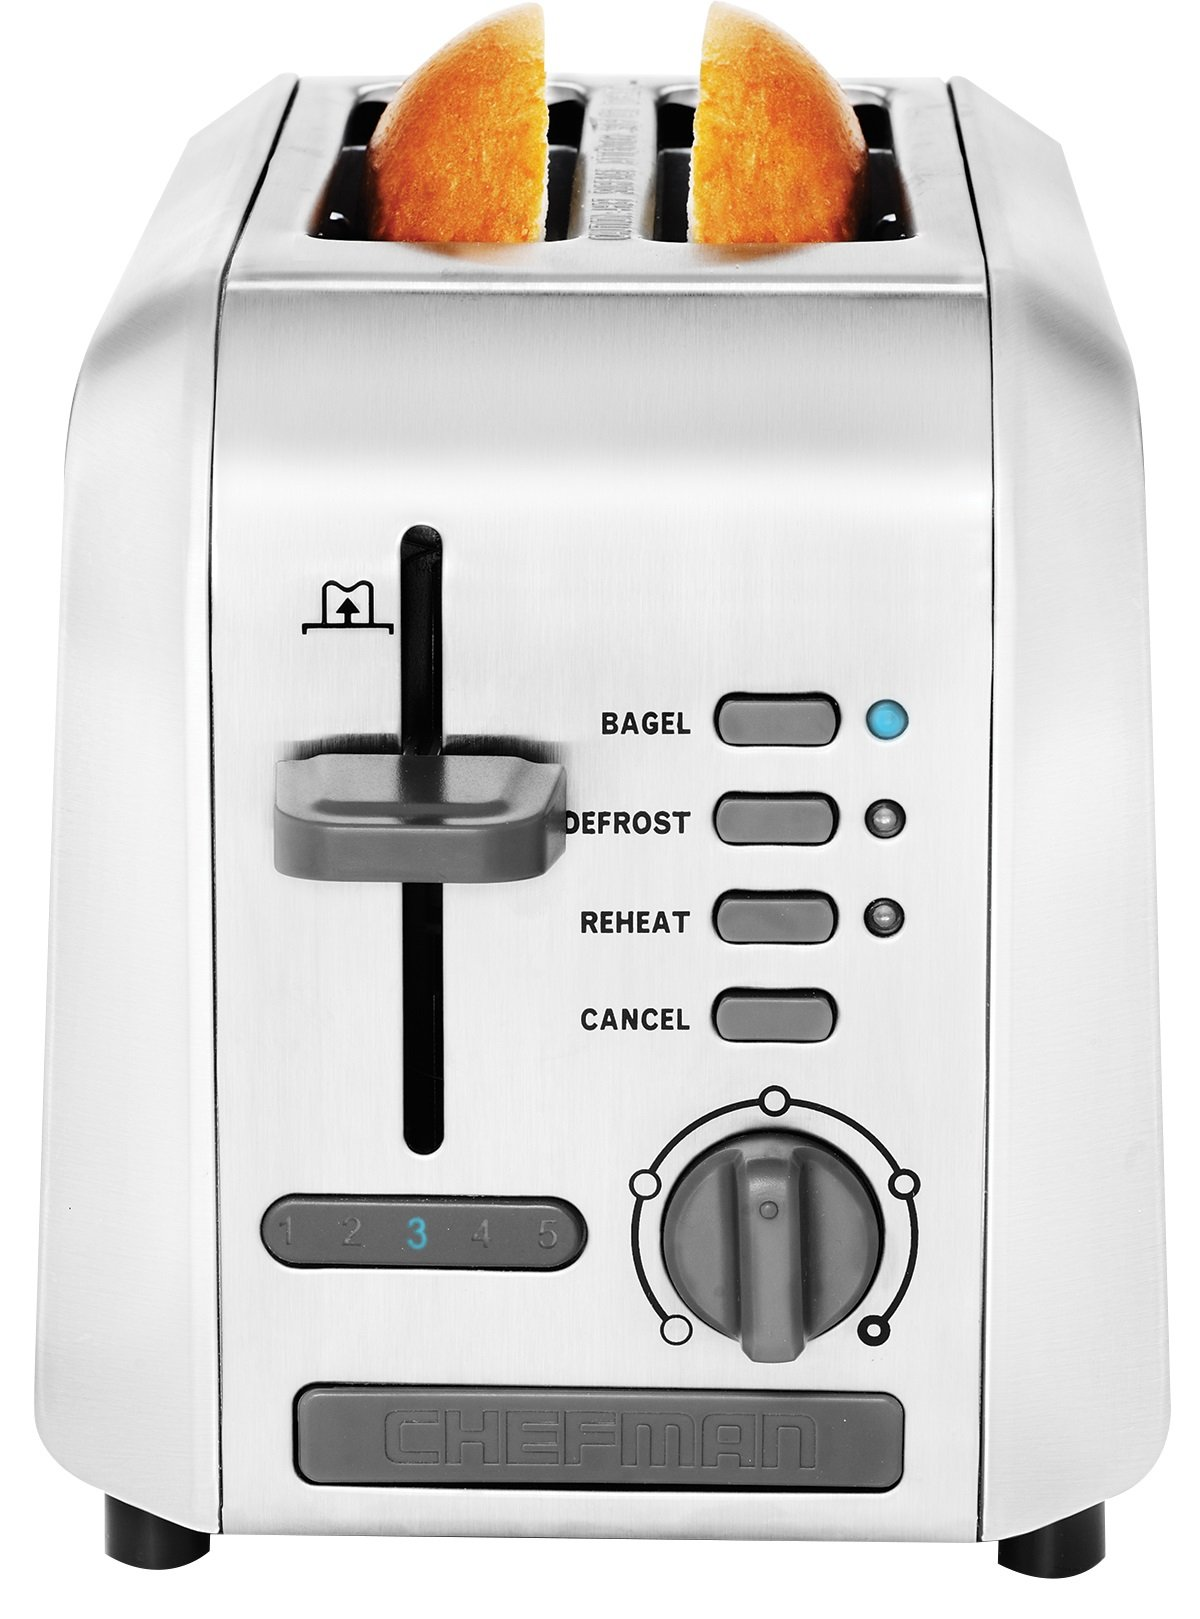 Chefman RJ31-SS 2 Slice Toaster W/Wide Slot, 5 Settings Quickly Toast Bagels, Waffles & Bread, Stainless Steel, Silver